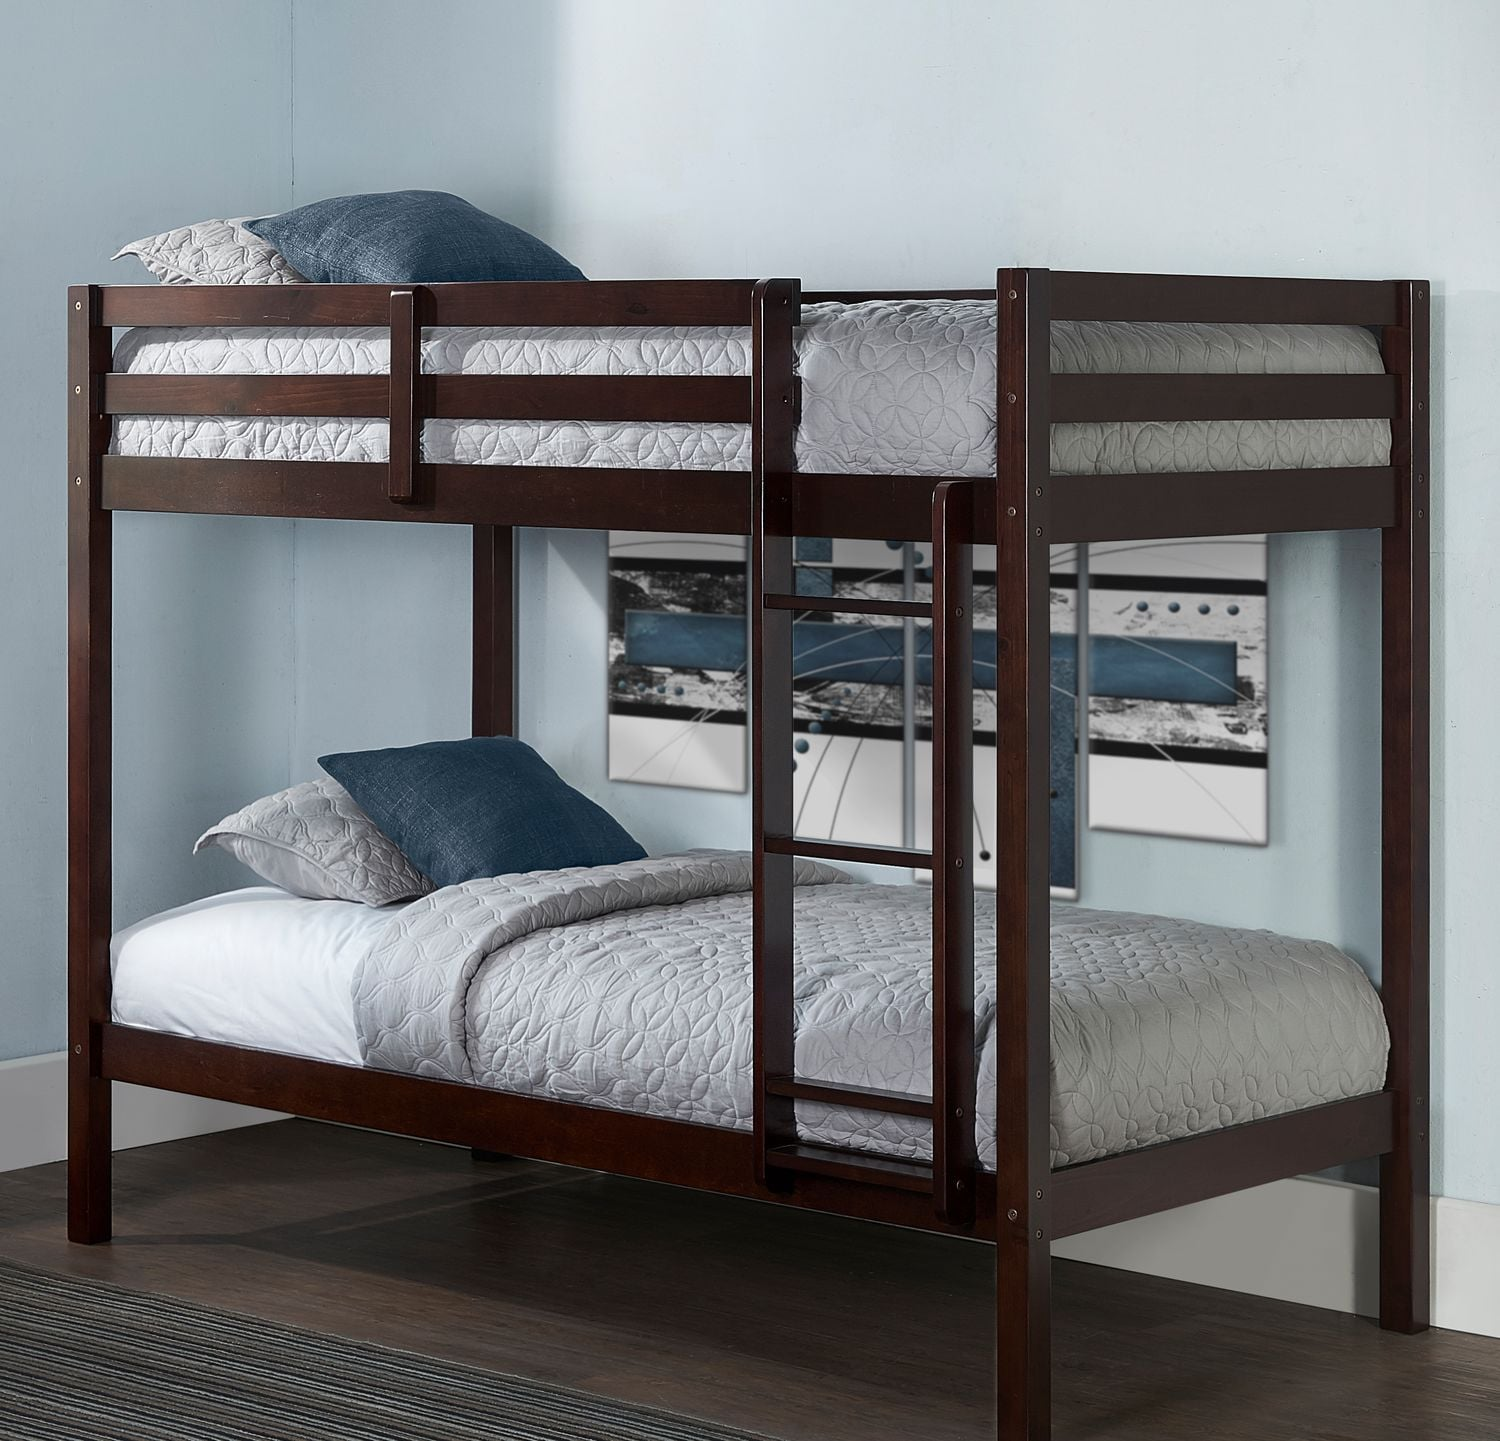 Hudson Twin Bunk Bed - Chocolate | Value City Furniture ...